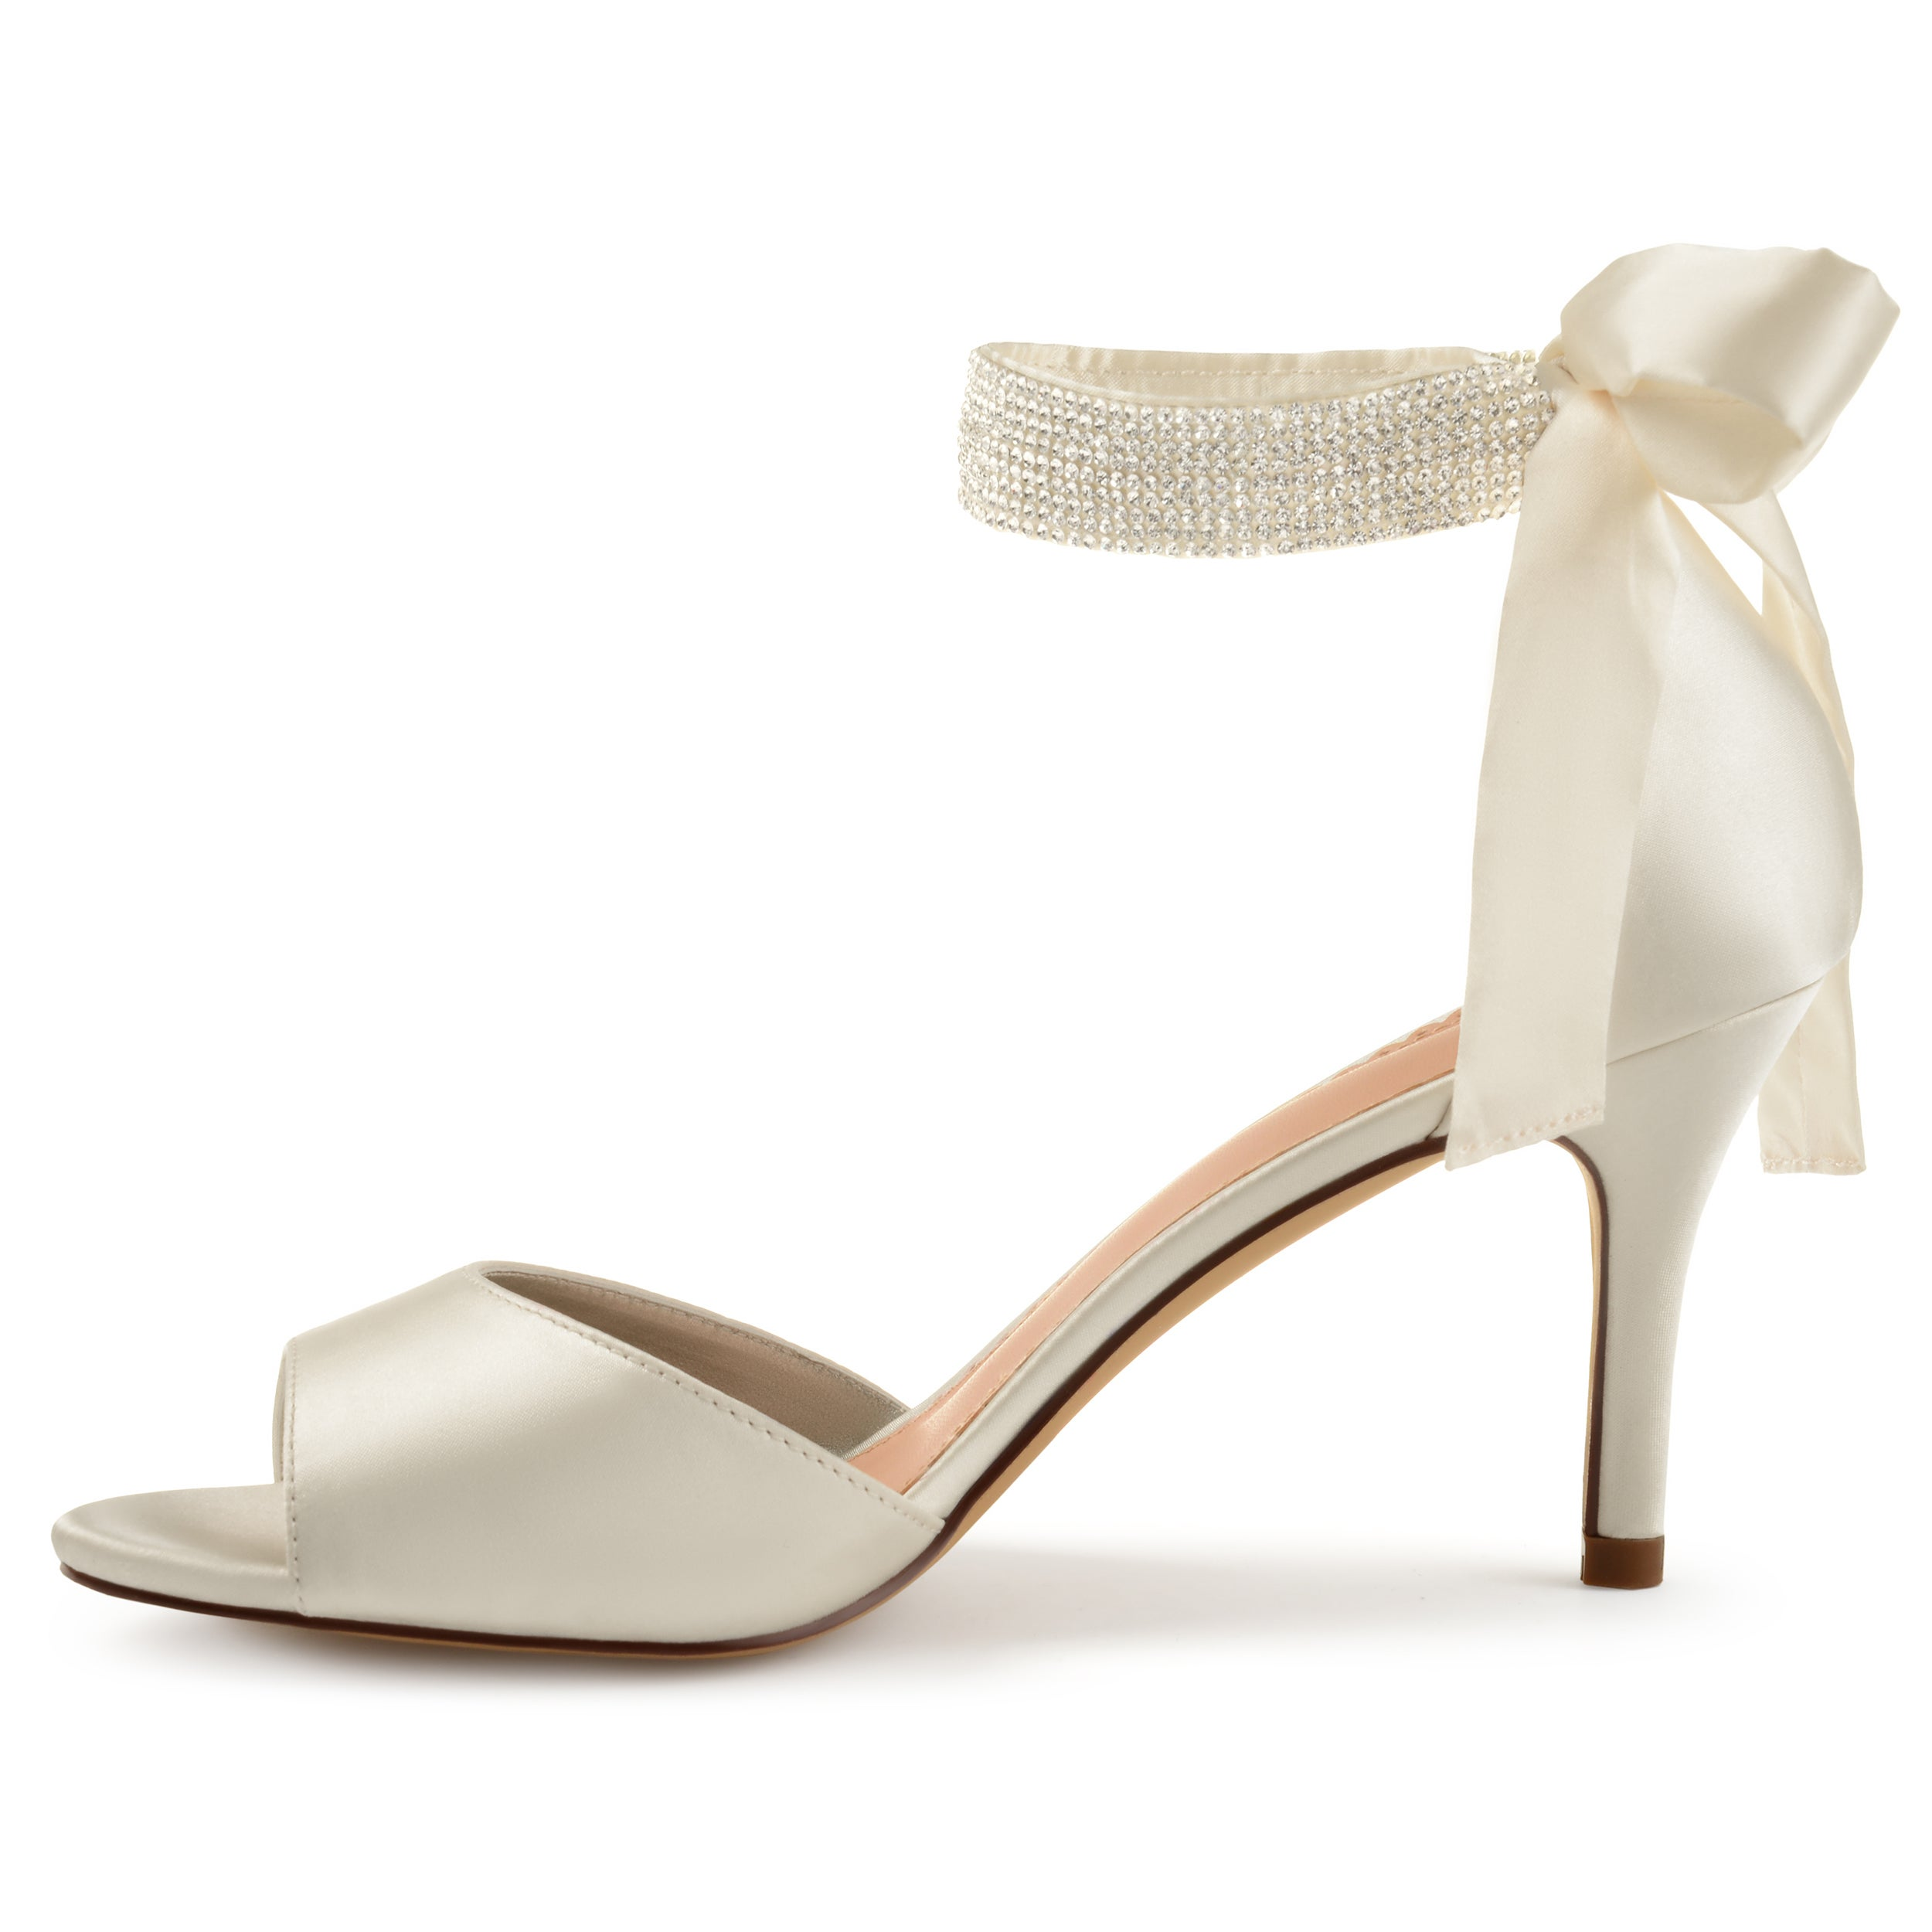 50ddcb692139d9 Shop Journee Collection Women s  Briela  Open-toe Rhinestone Ankle Strap  High Heels - On Sale - Free Shipping Today - Overstock - 18113689